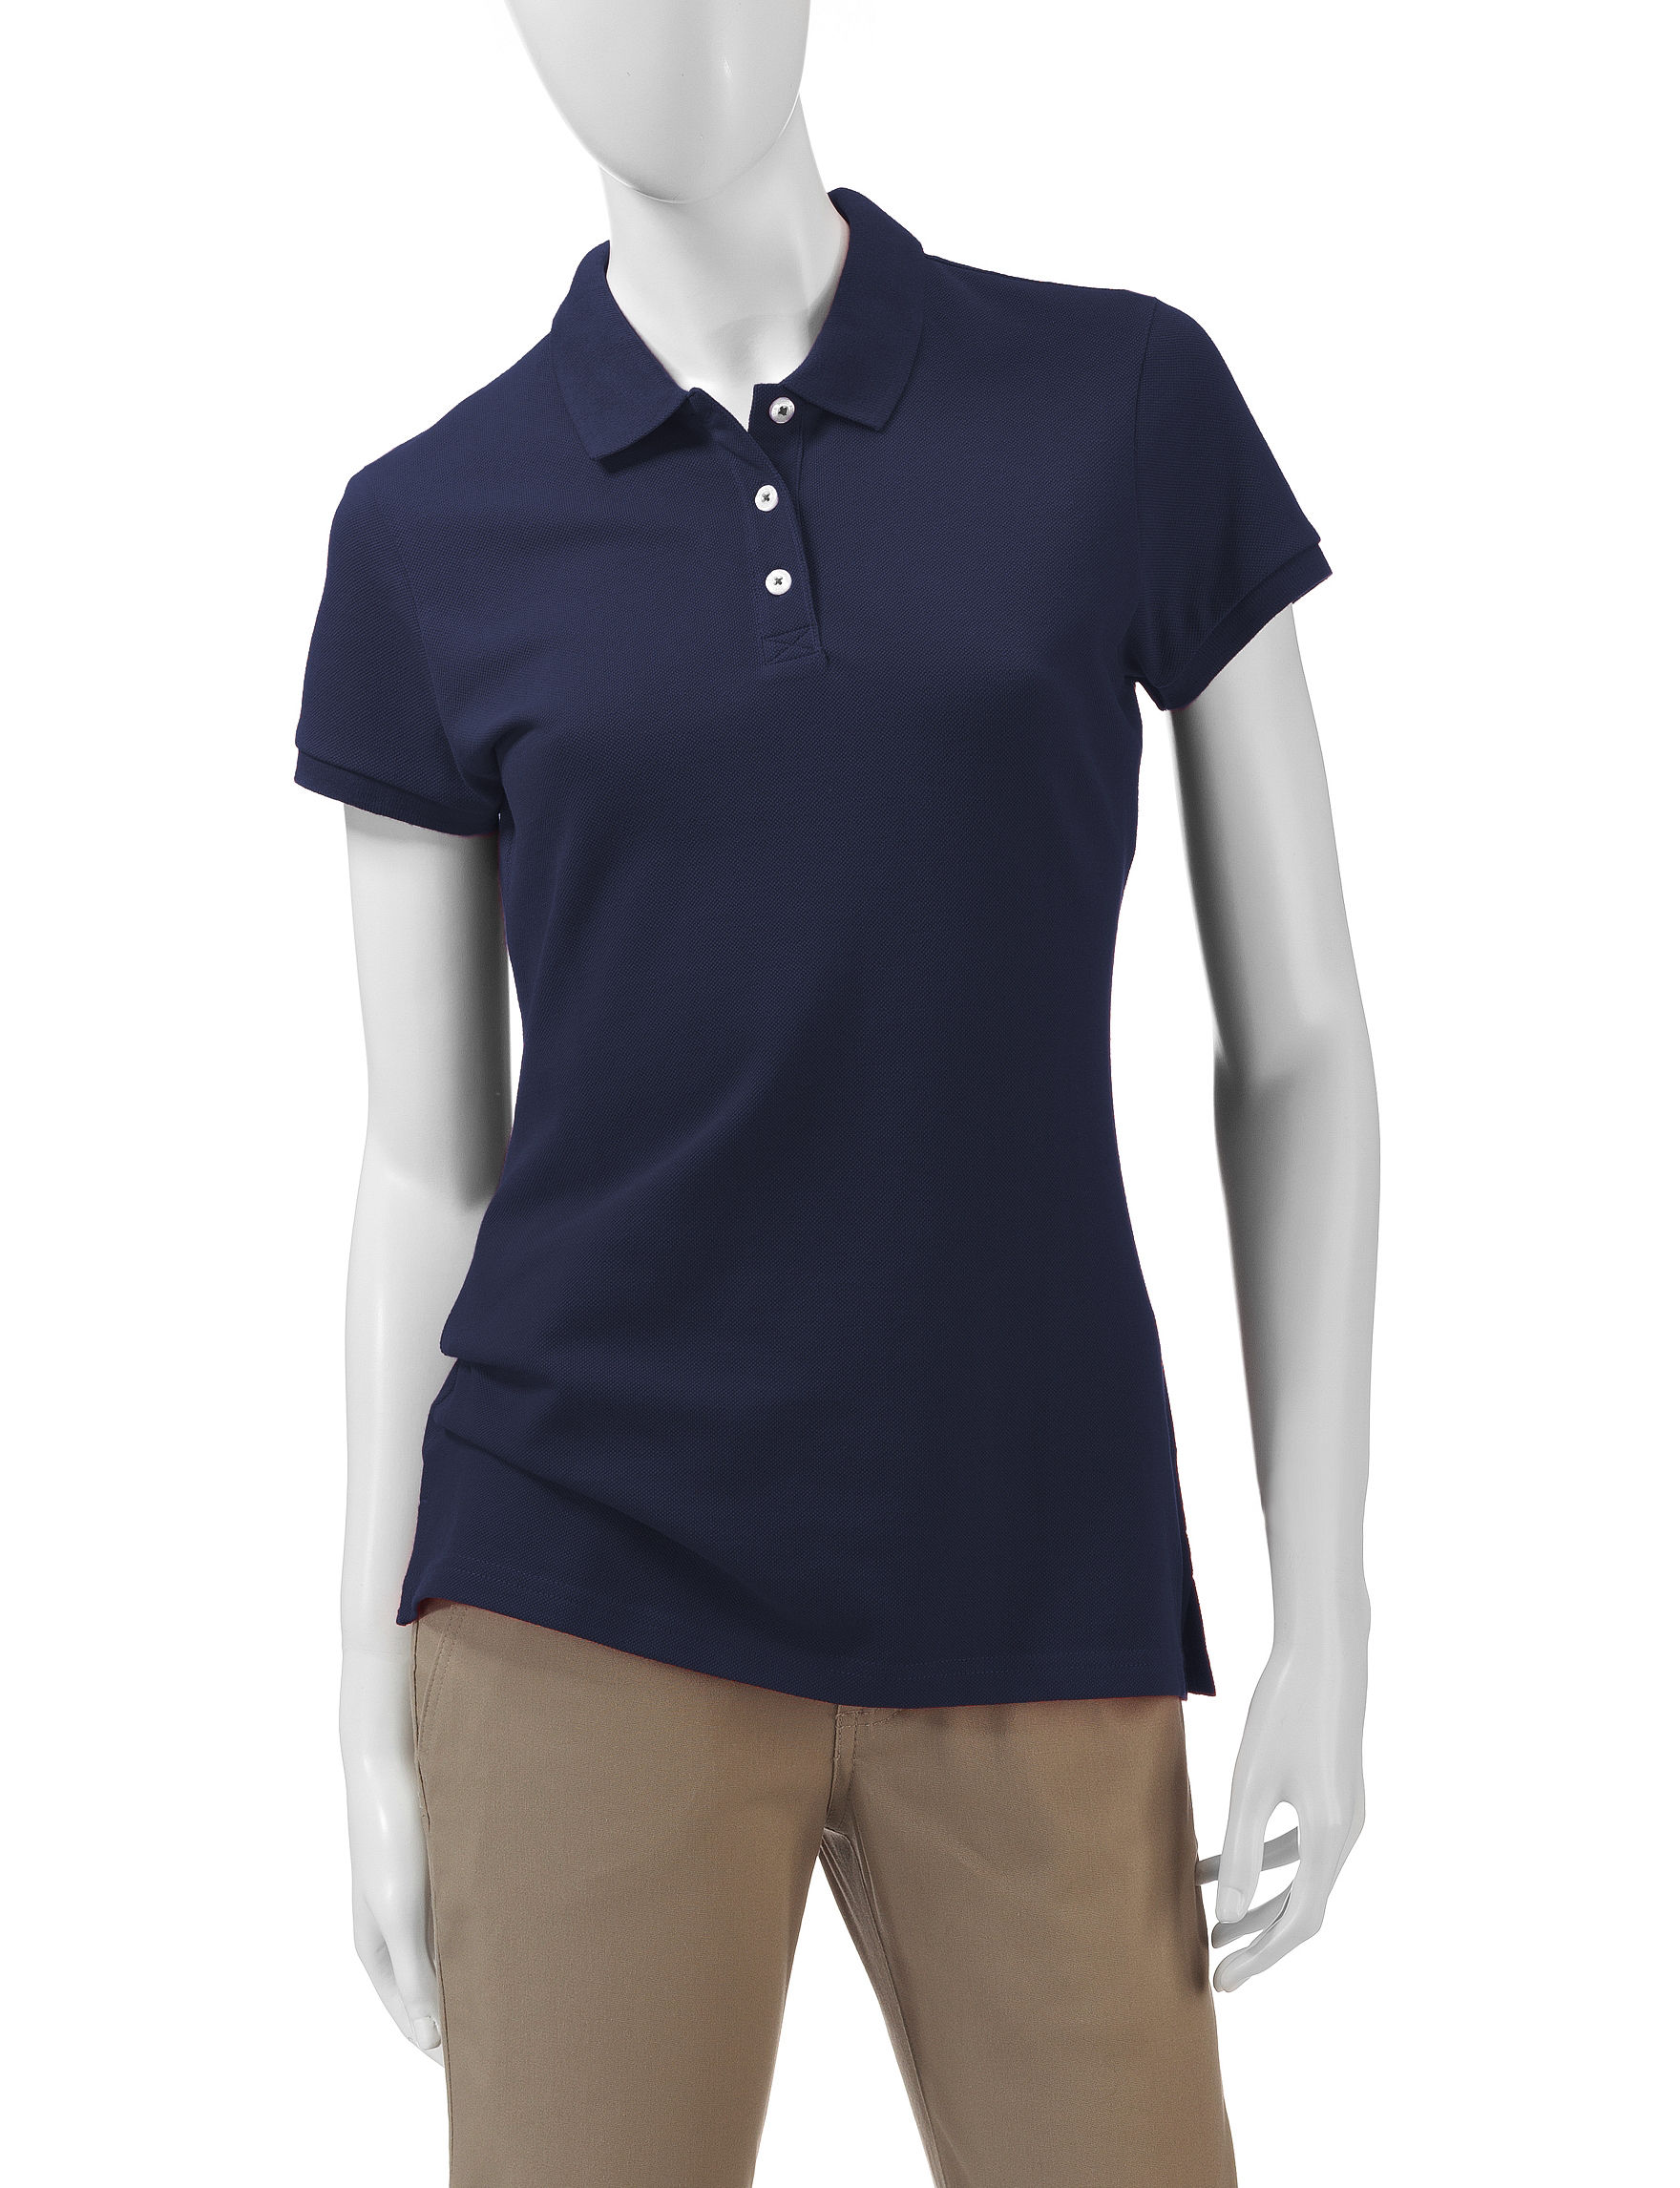 U.S. Polo Assn. Navy Shirts & Blouses